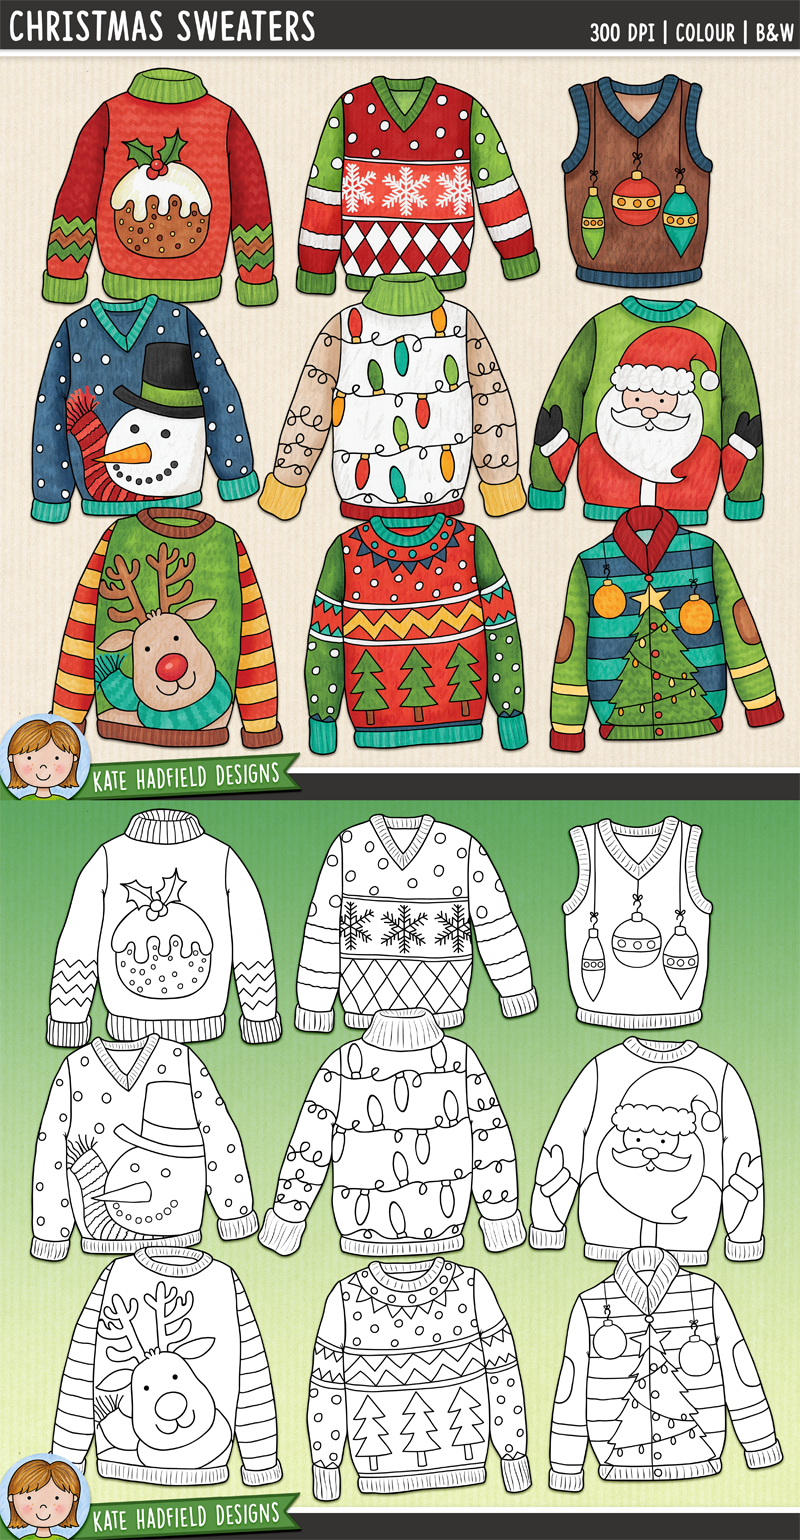 Ugly Christmas Sweaters 2020 To Draw Christmas Sweaters Clip Art in 2020 | Christmas art projects